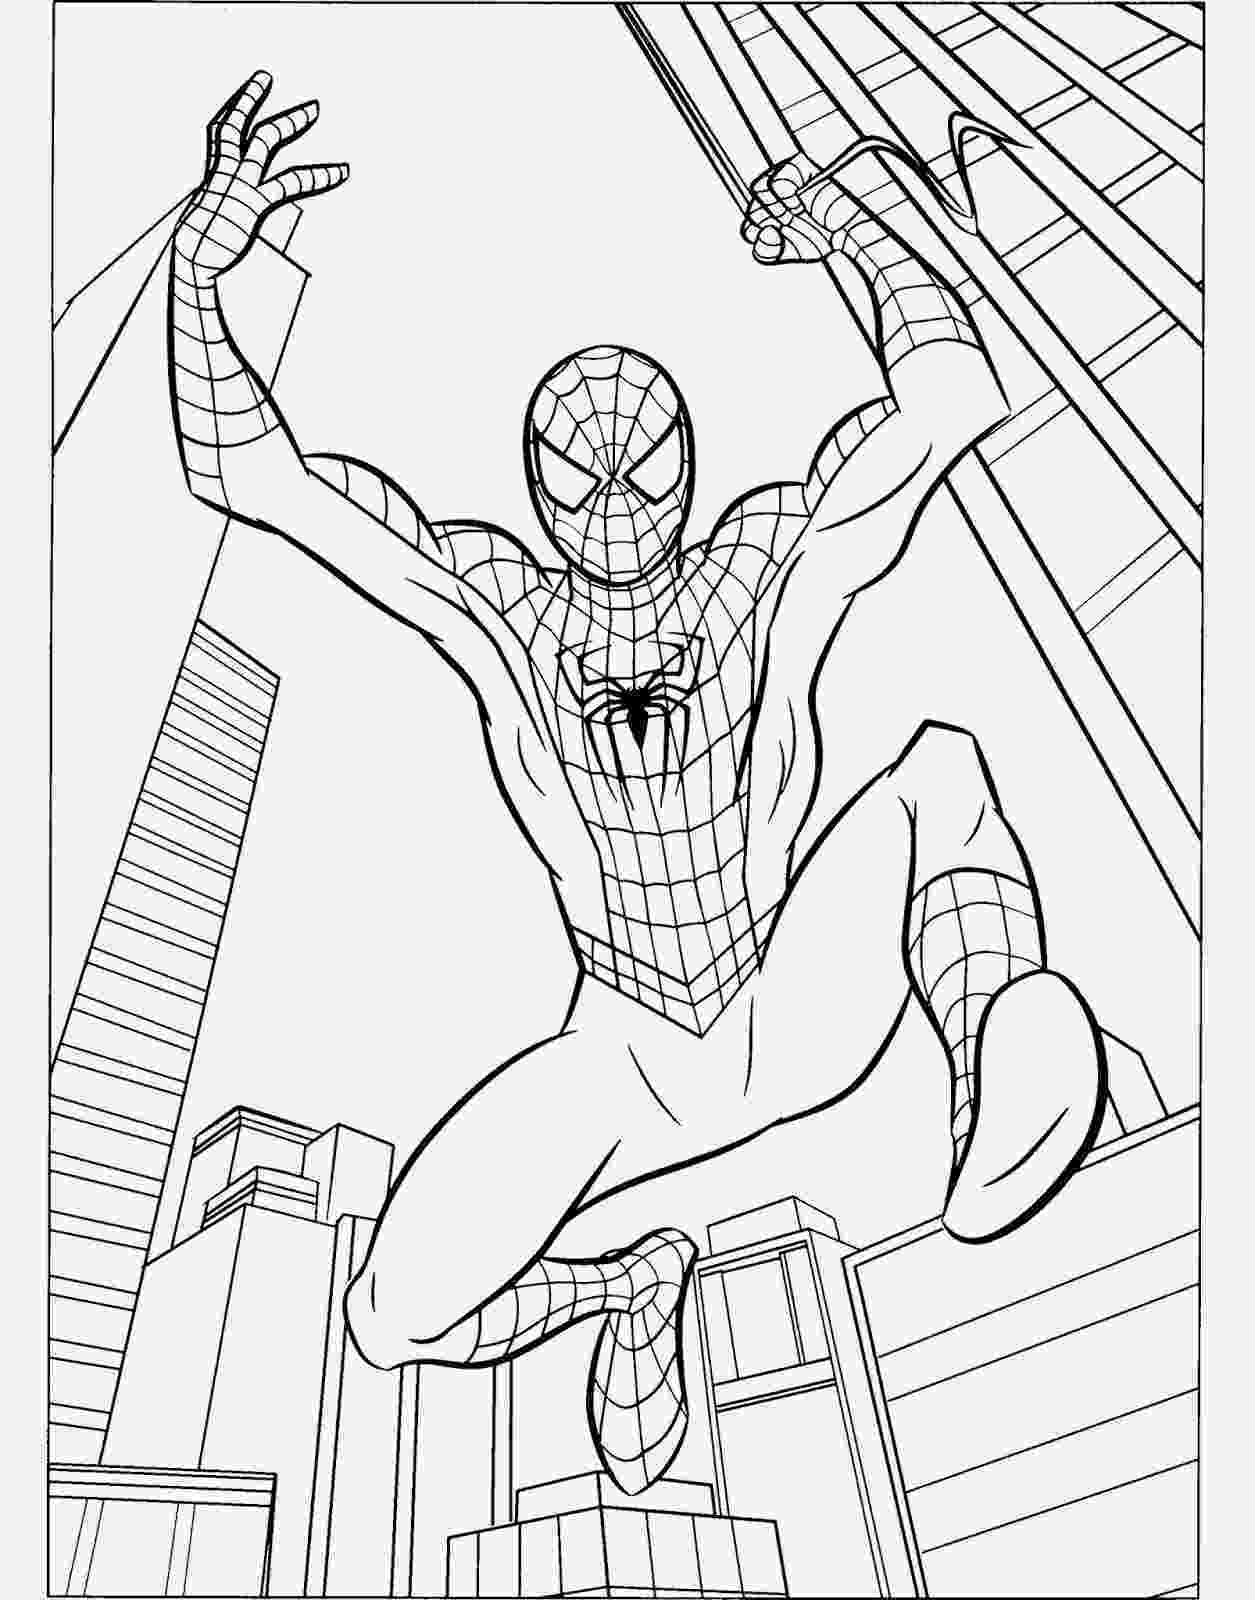 spiderman colouring pages printable coloring pages spiderman free printable coloring pages pages printable spiderman colouring